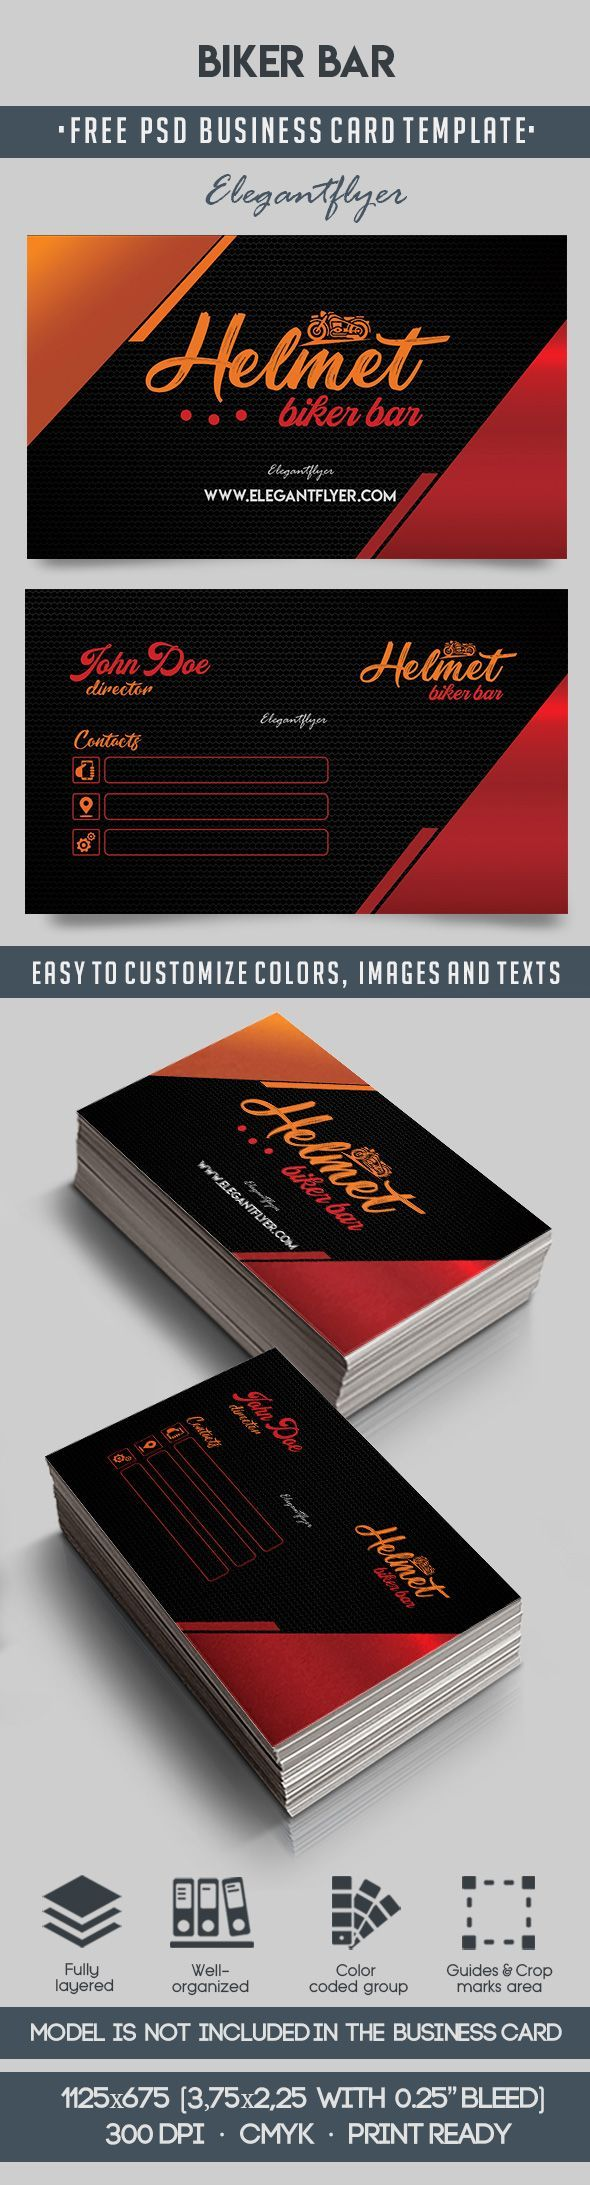 https://www.elegantflyer.com/free-business-cards-template/biker-bar-free-business-card-templates-psd/